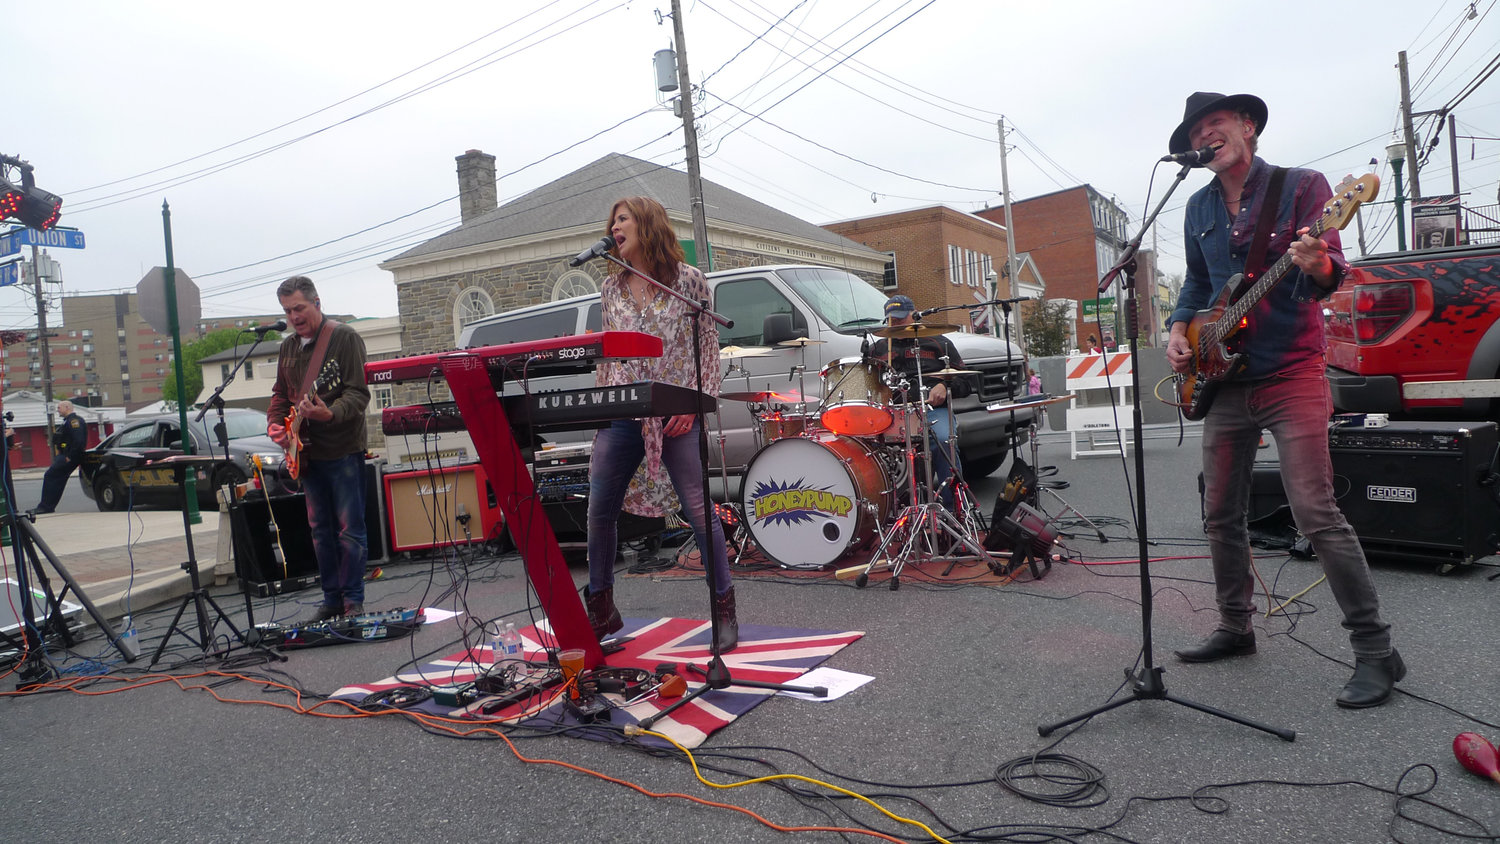 Honeypump, a Harrisburg area-based band specializing in classic rock covers, jammed throughout the Little Little Beer Festival in downtown Middletown on May 1.